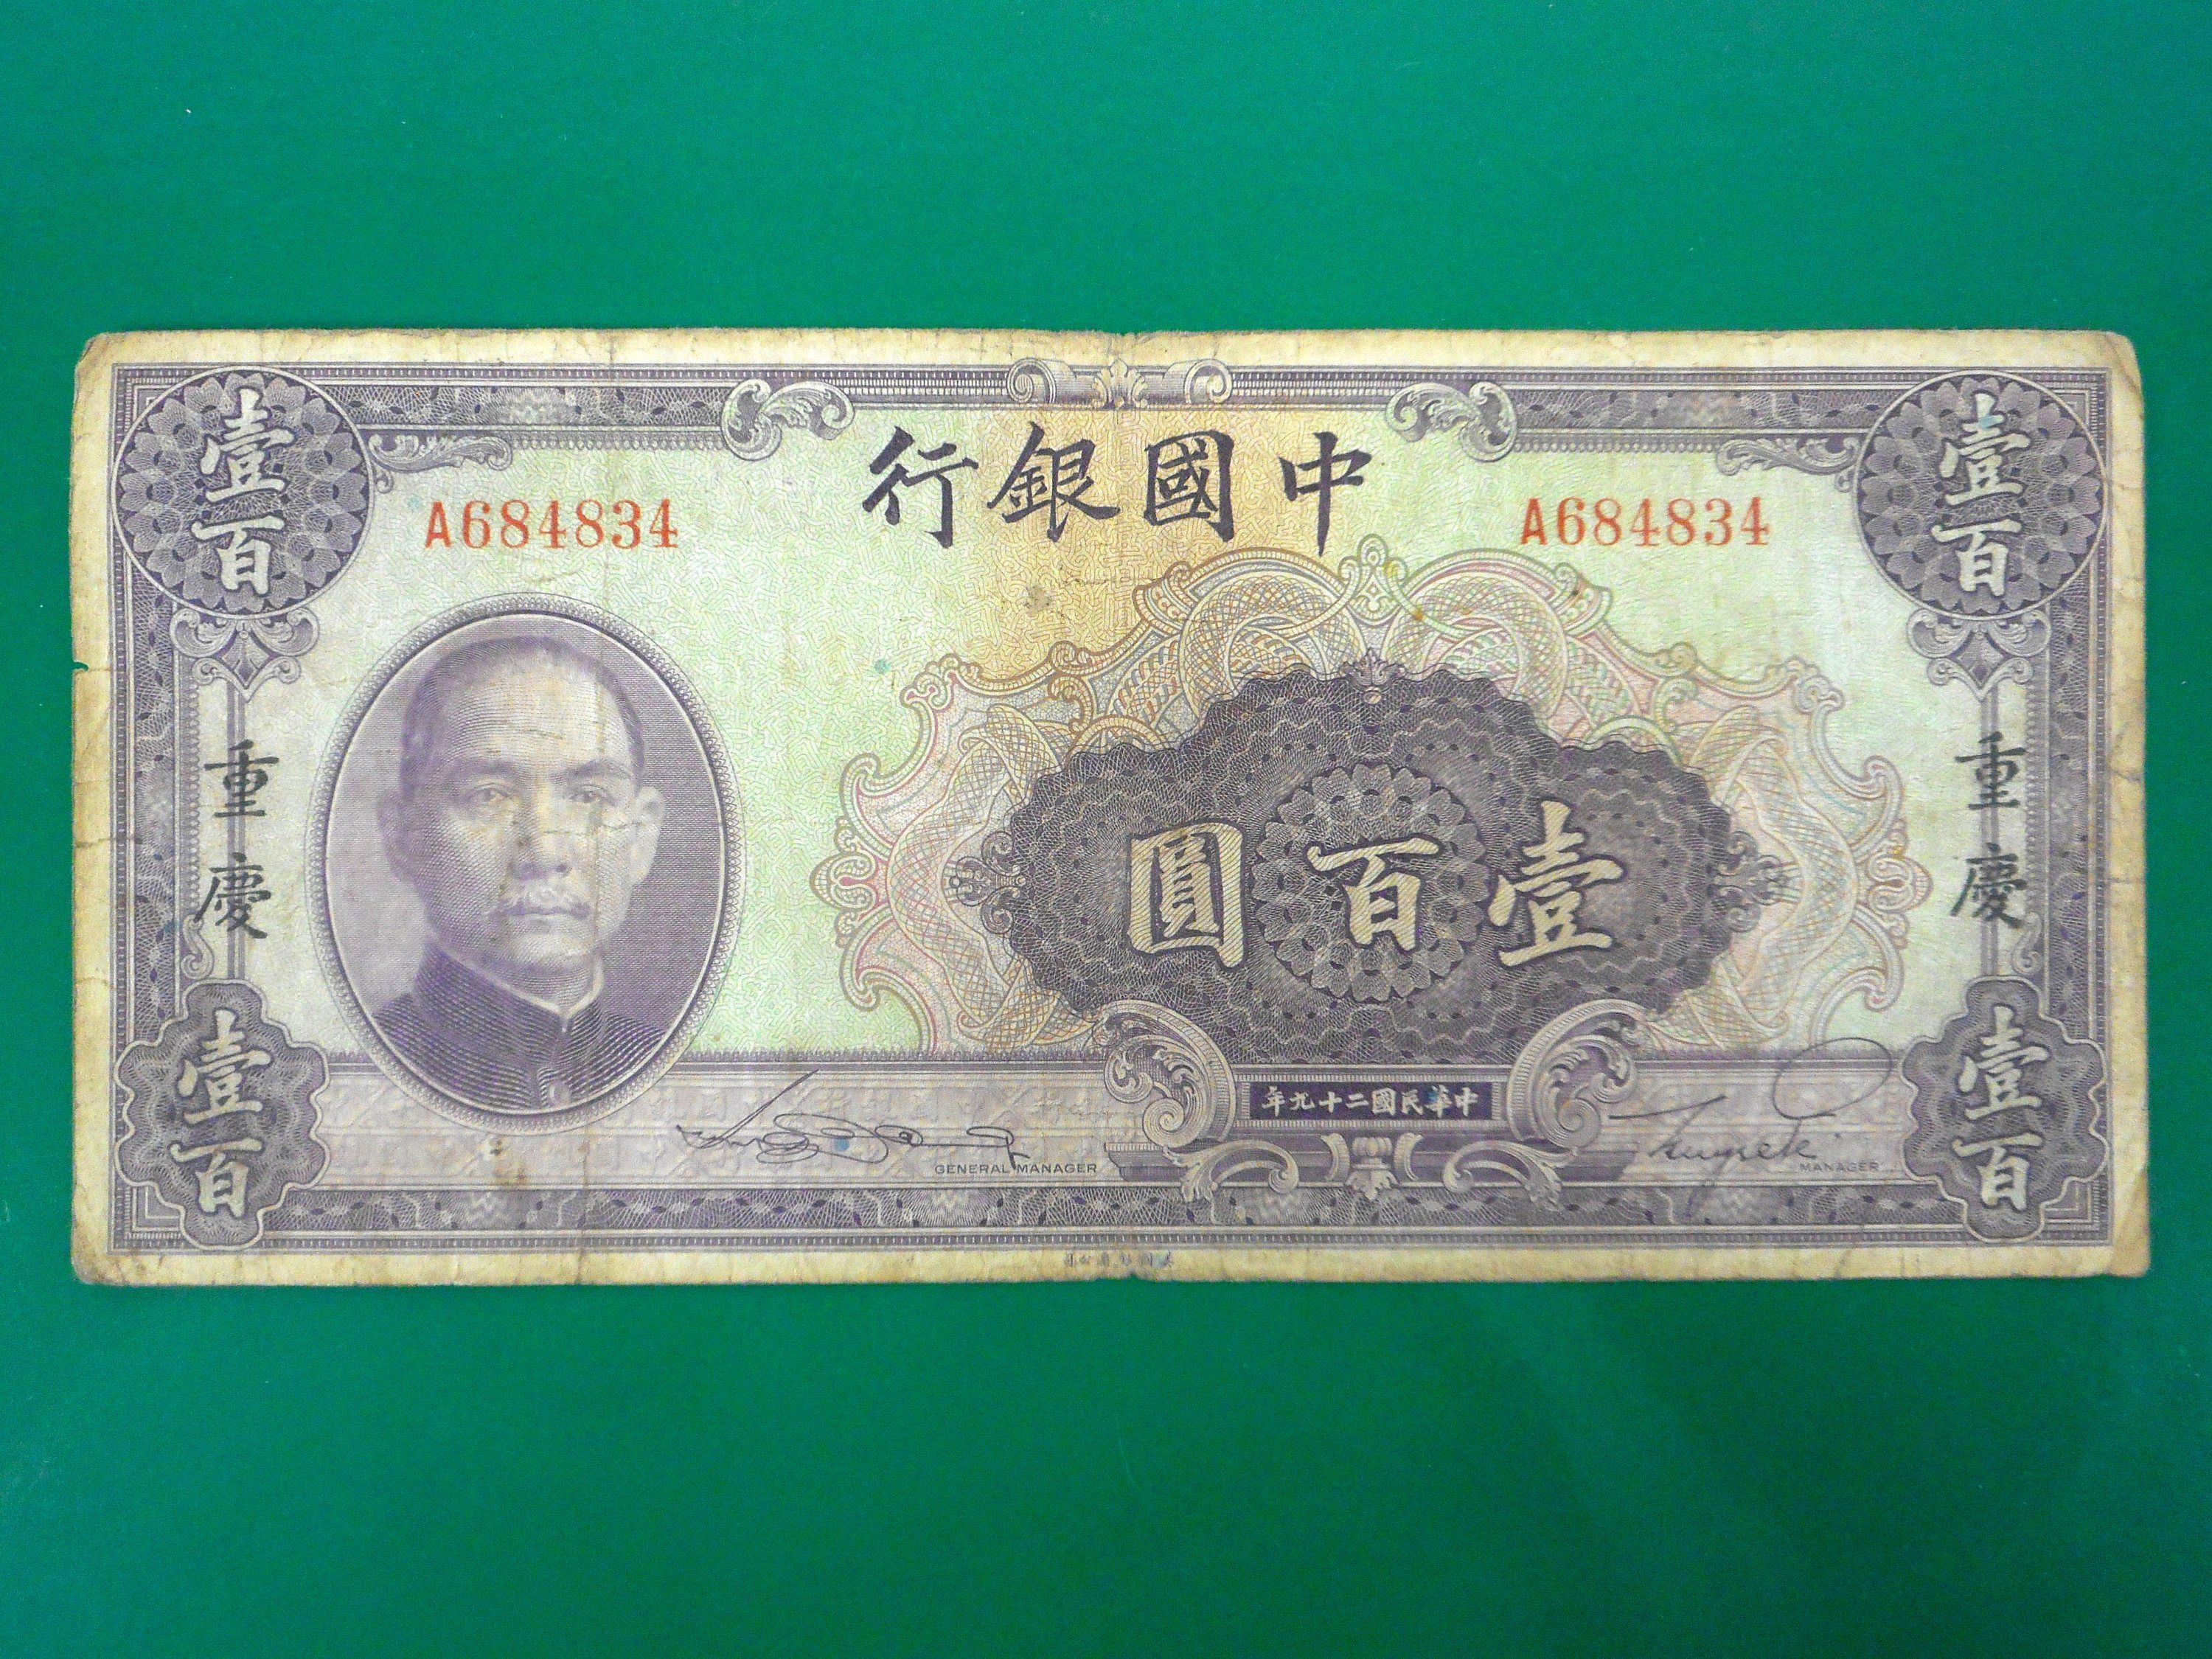 Yuan Banknote Money Currency